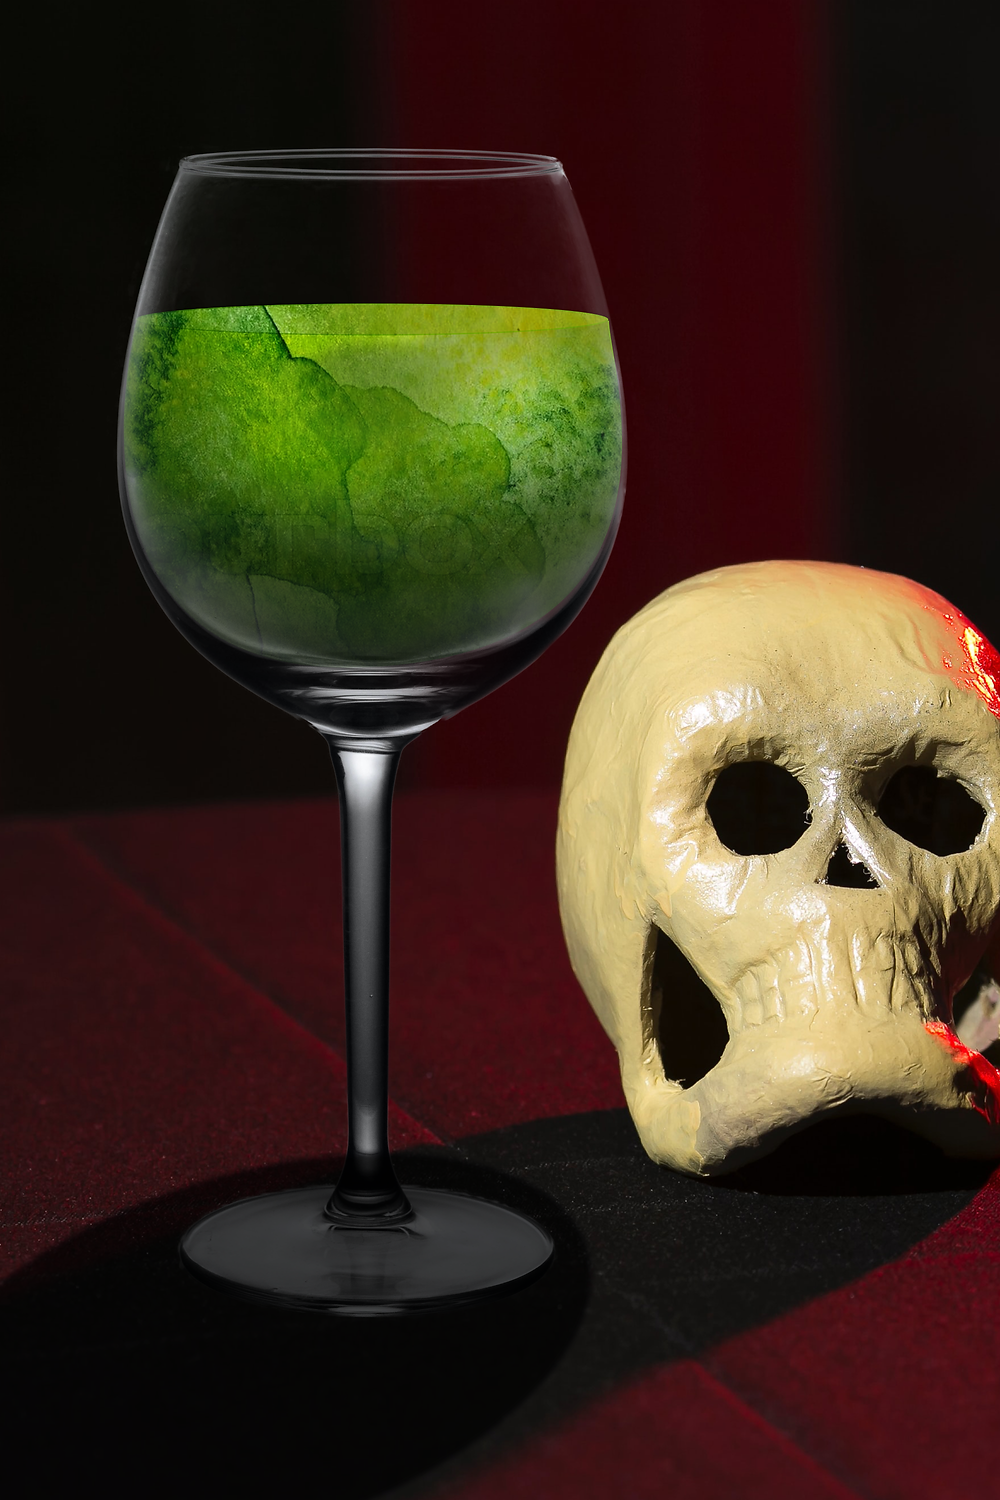 A wine glass with a disturbing green liquid next to a white paper maché skull on a red tablecloth